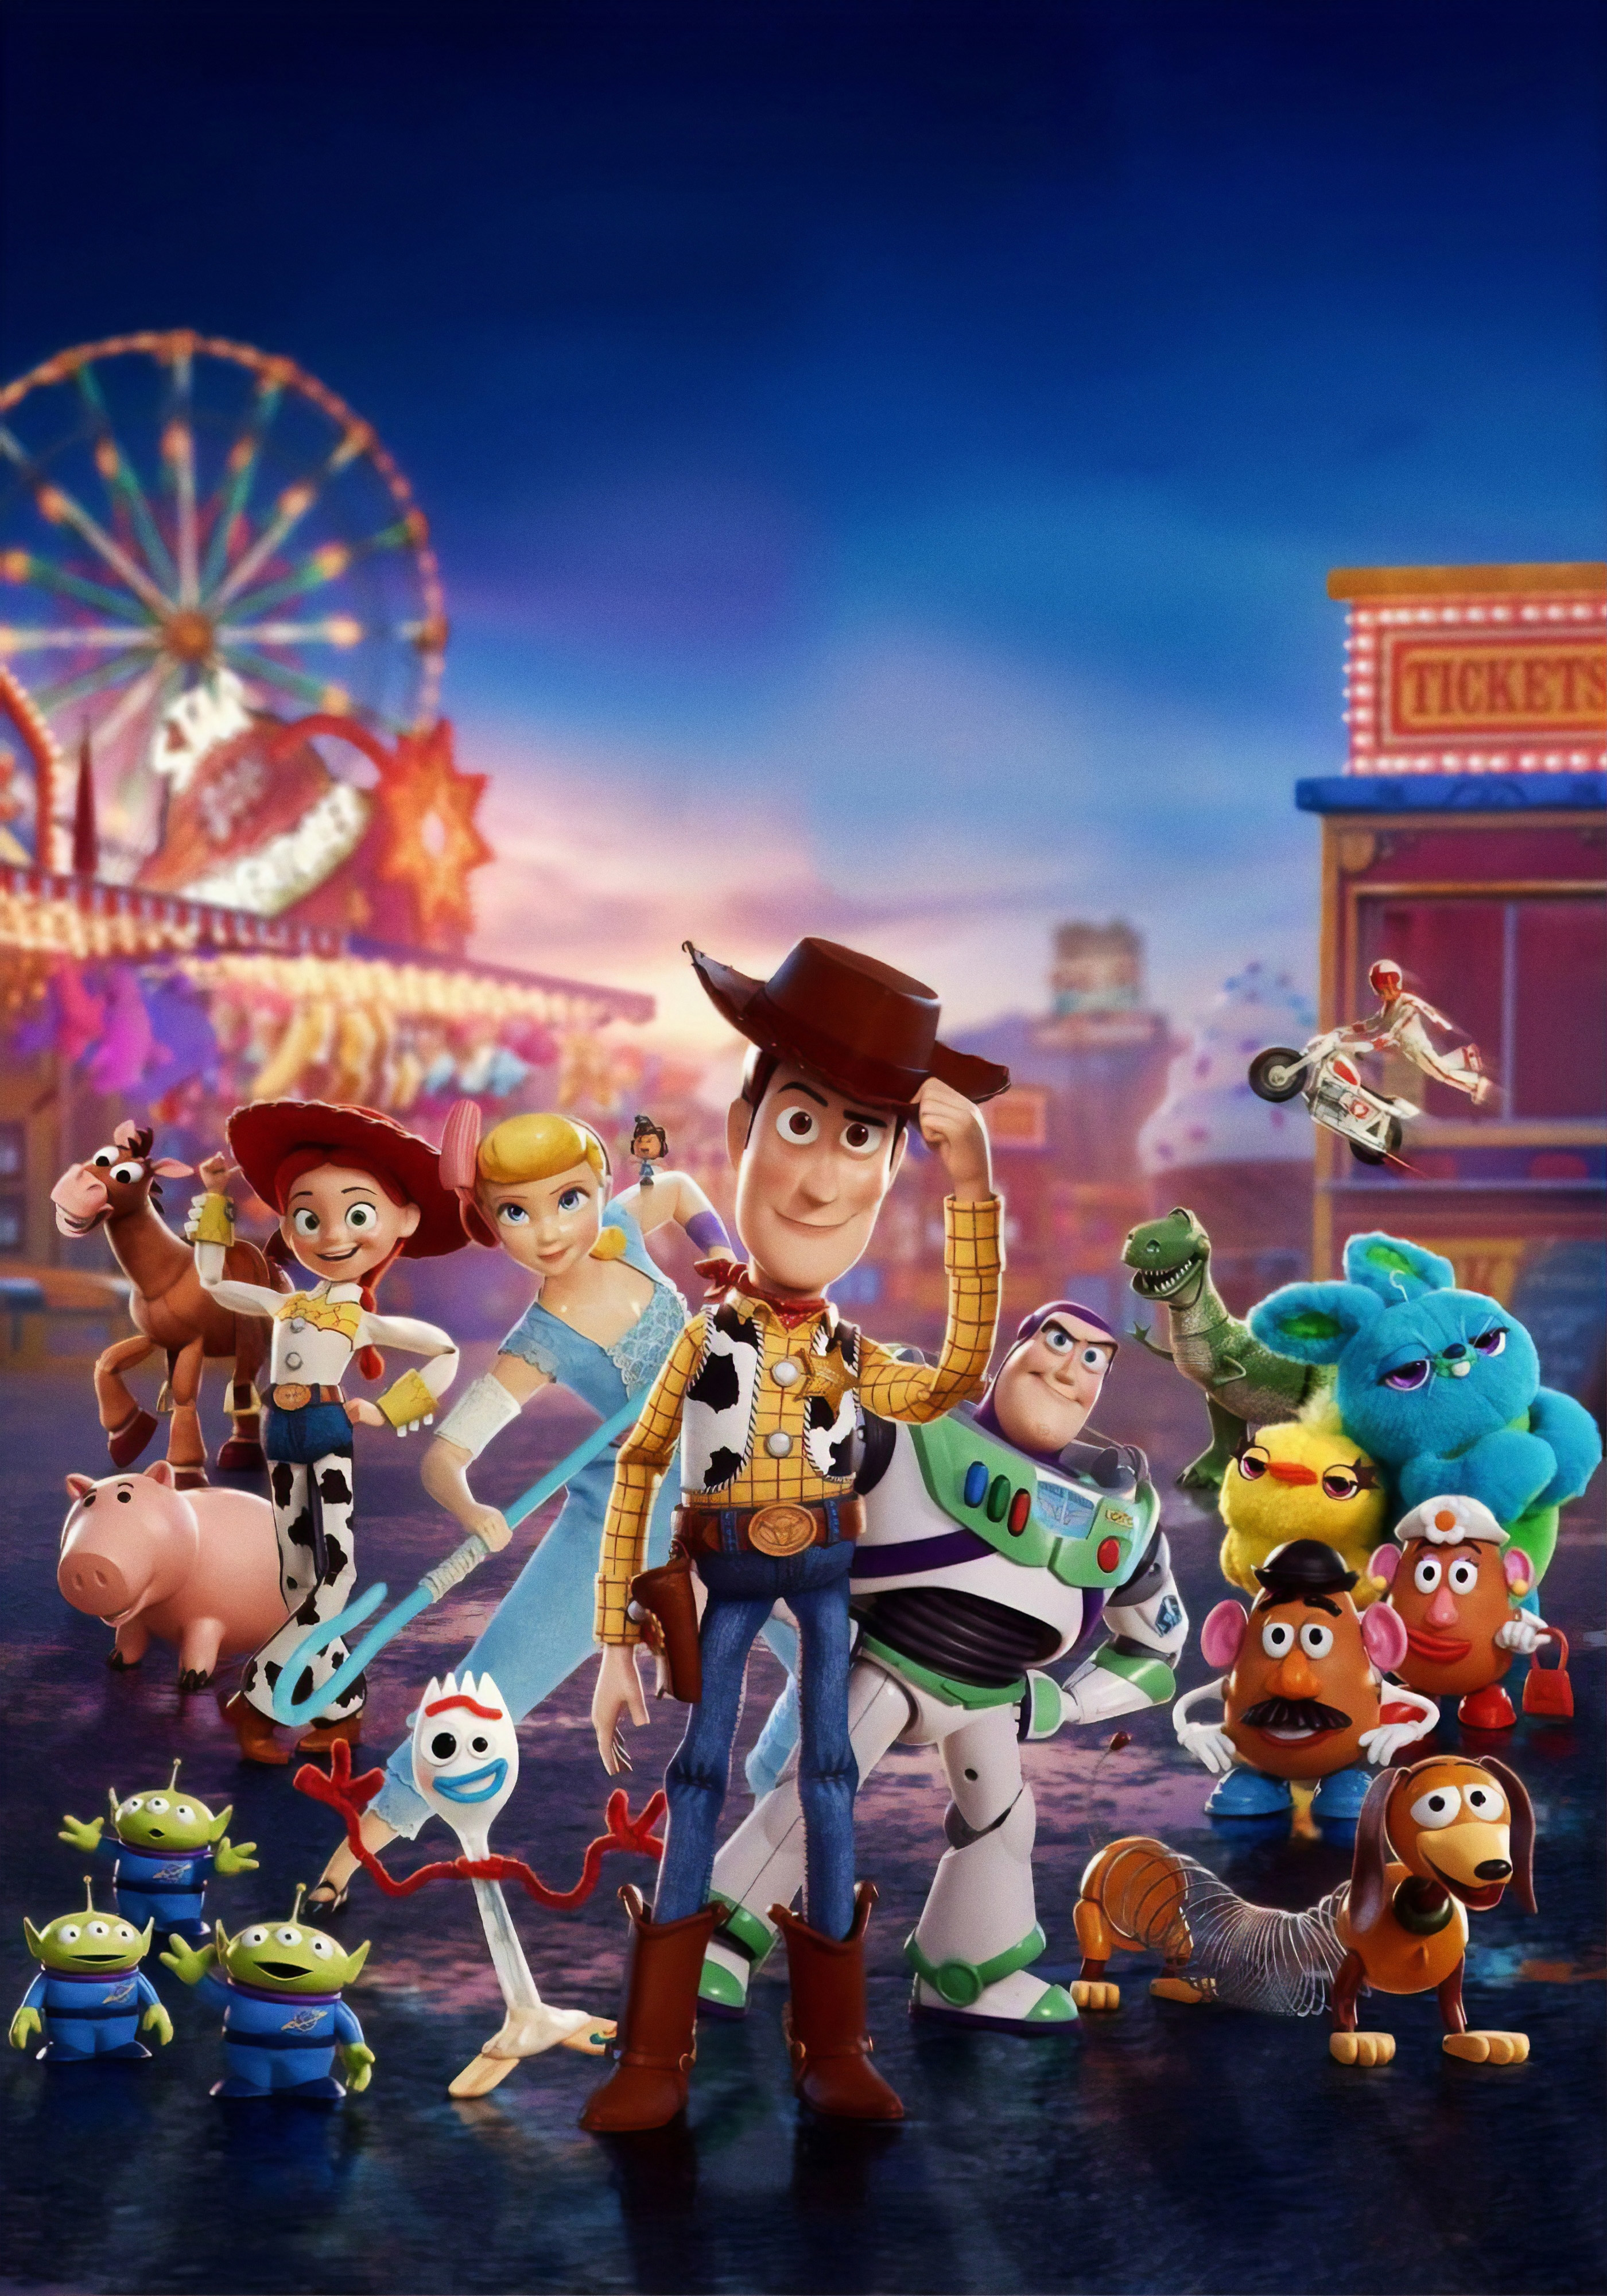 Toy Story 4 Wallpaper, HD Movies 4K Wallpapers, Images ...